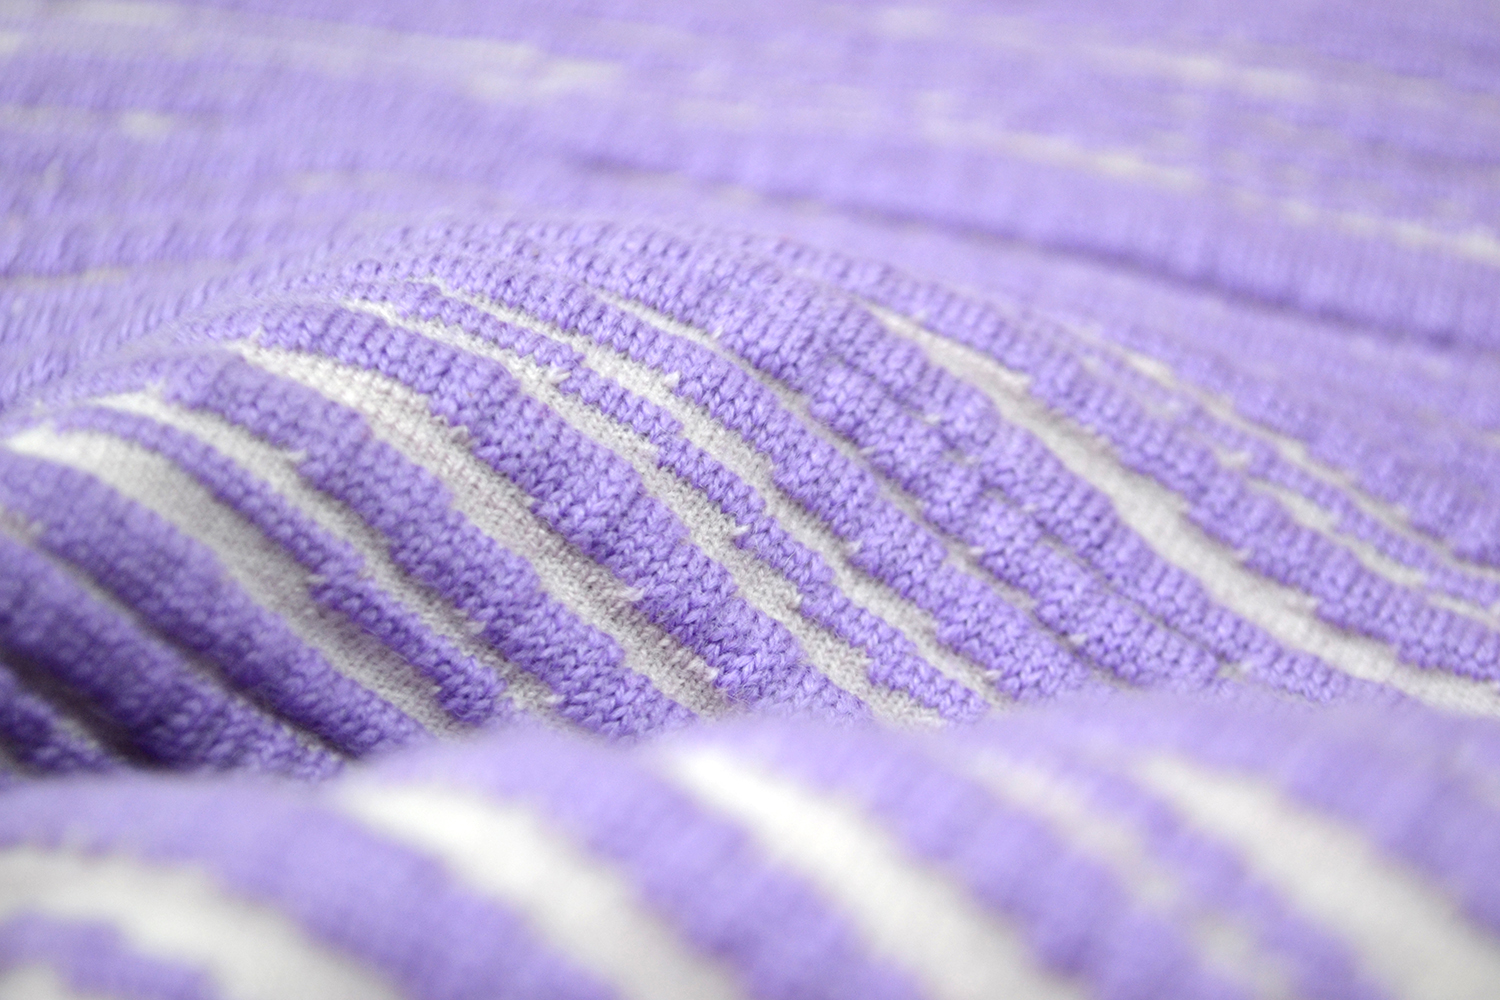 MOVEMENT FABRICS > INHOUSE FABRIC  Vintage knitted flexible soundabsorbing fabrics, lingerie tech, wool